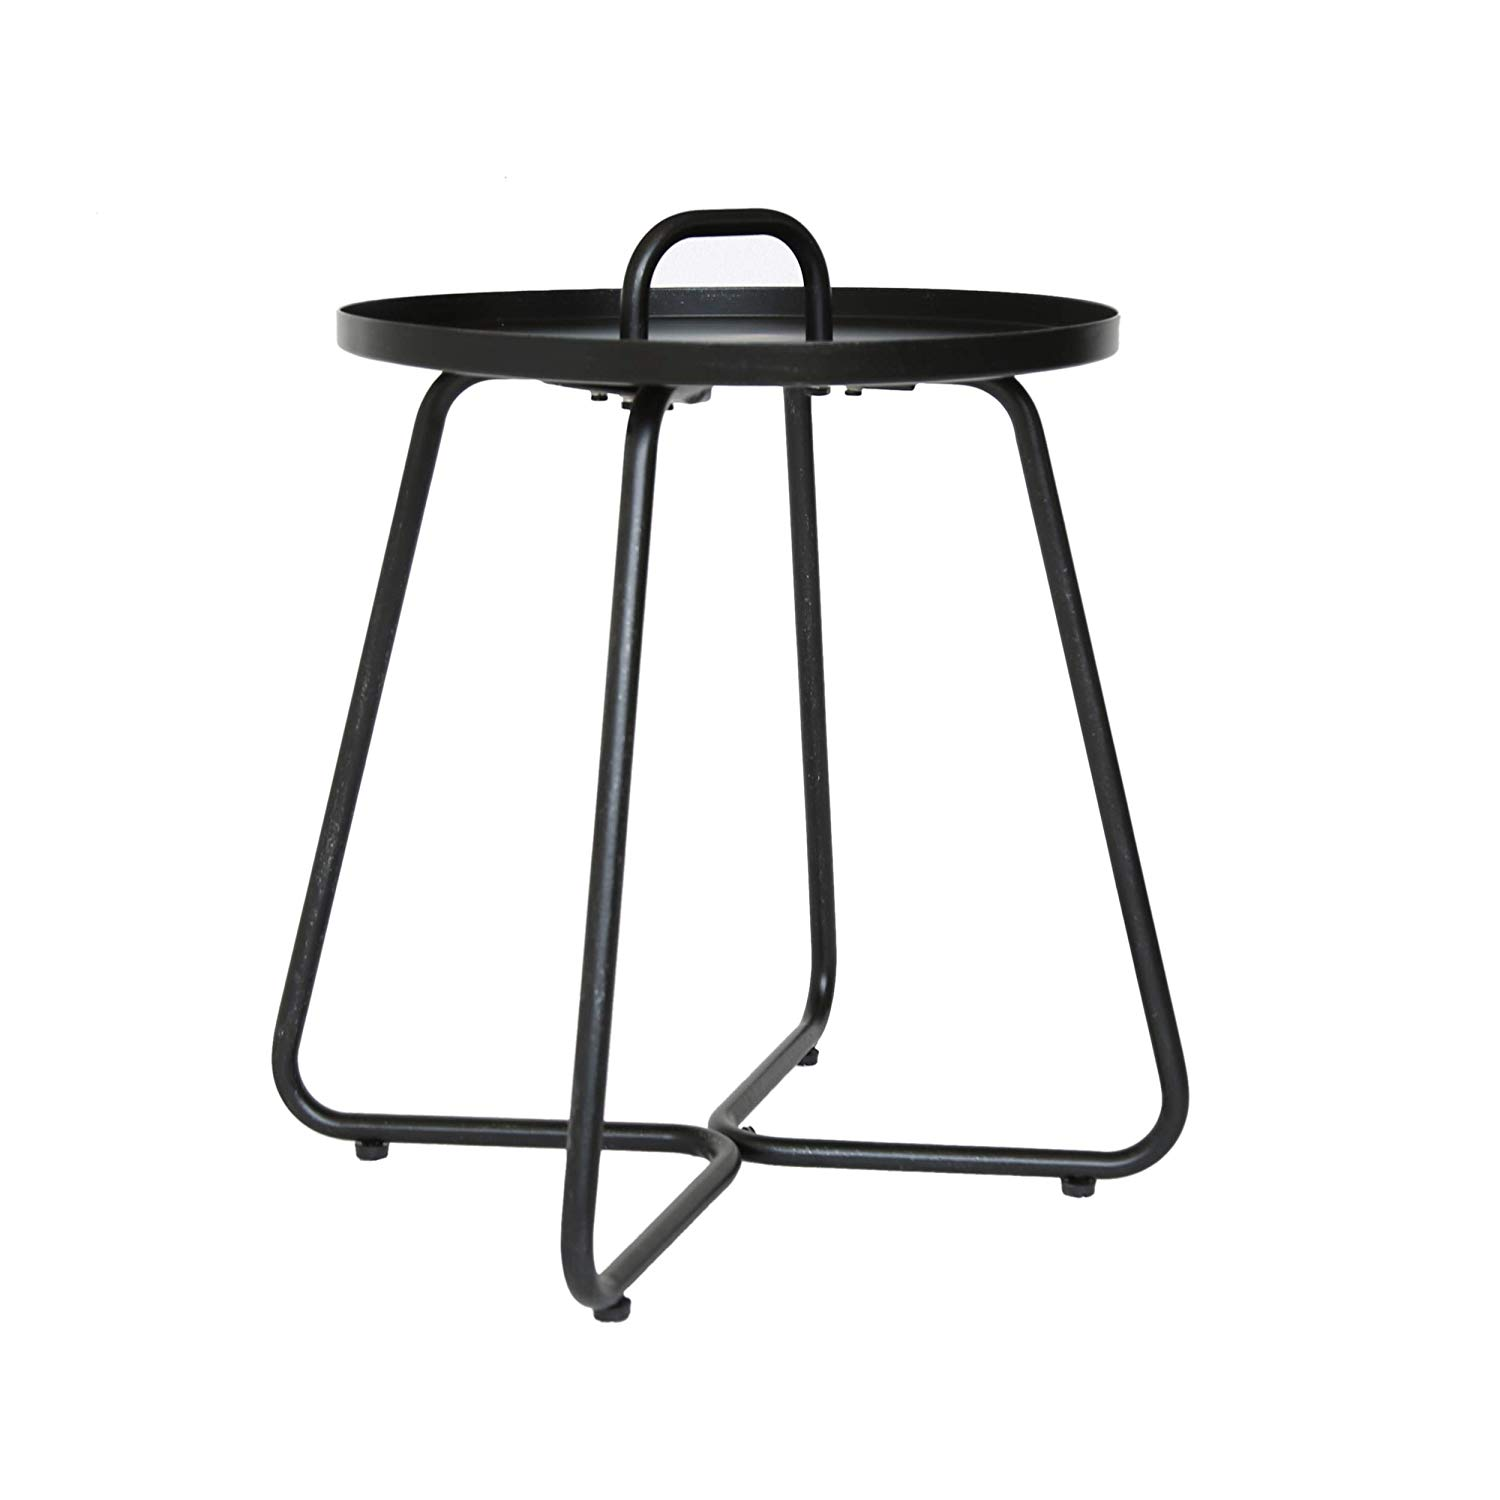 great furniture amy outdoor aluminum side table ryder small accent matte black garden shabby chic lamps pier nightstands tiffany style chandelier hotel with and usb smoked glass